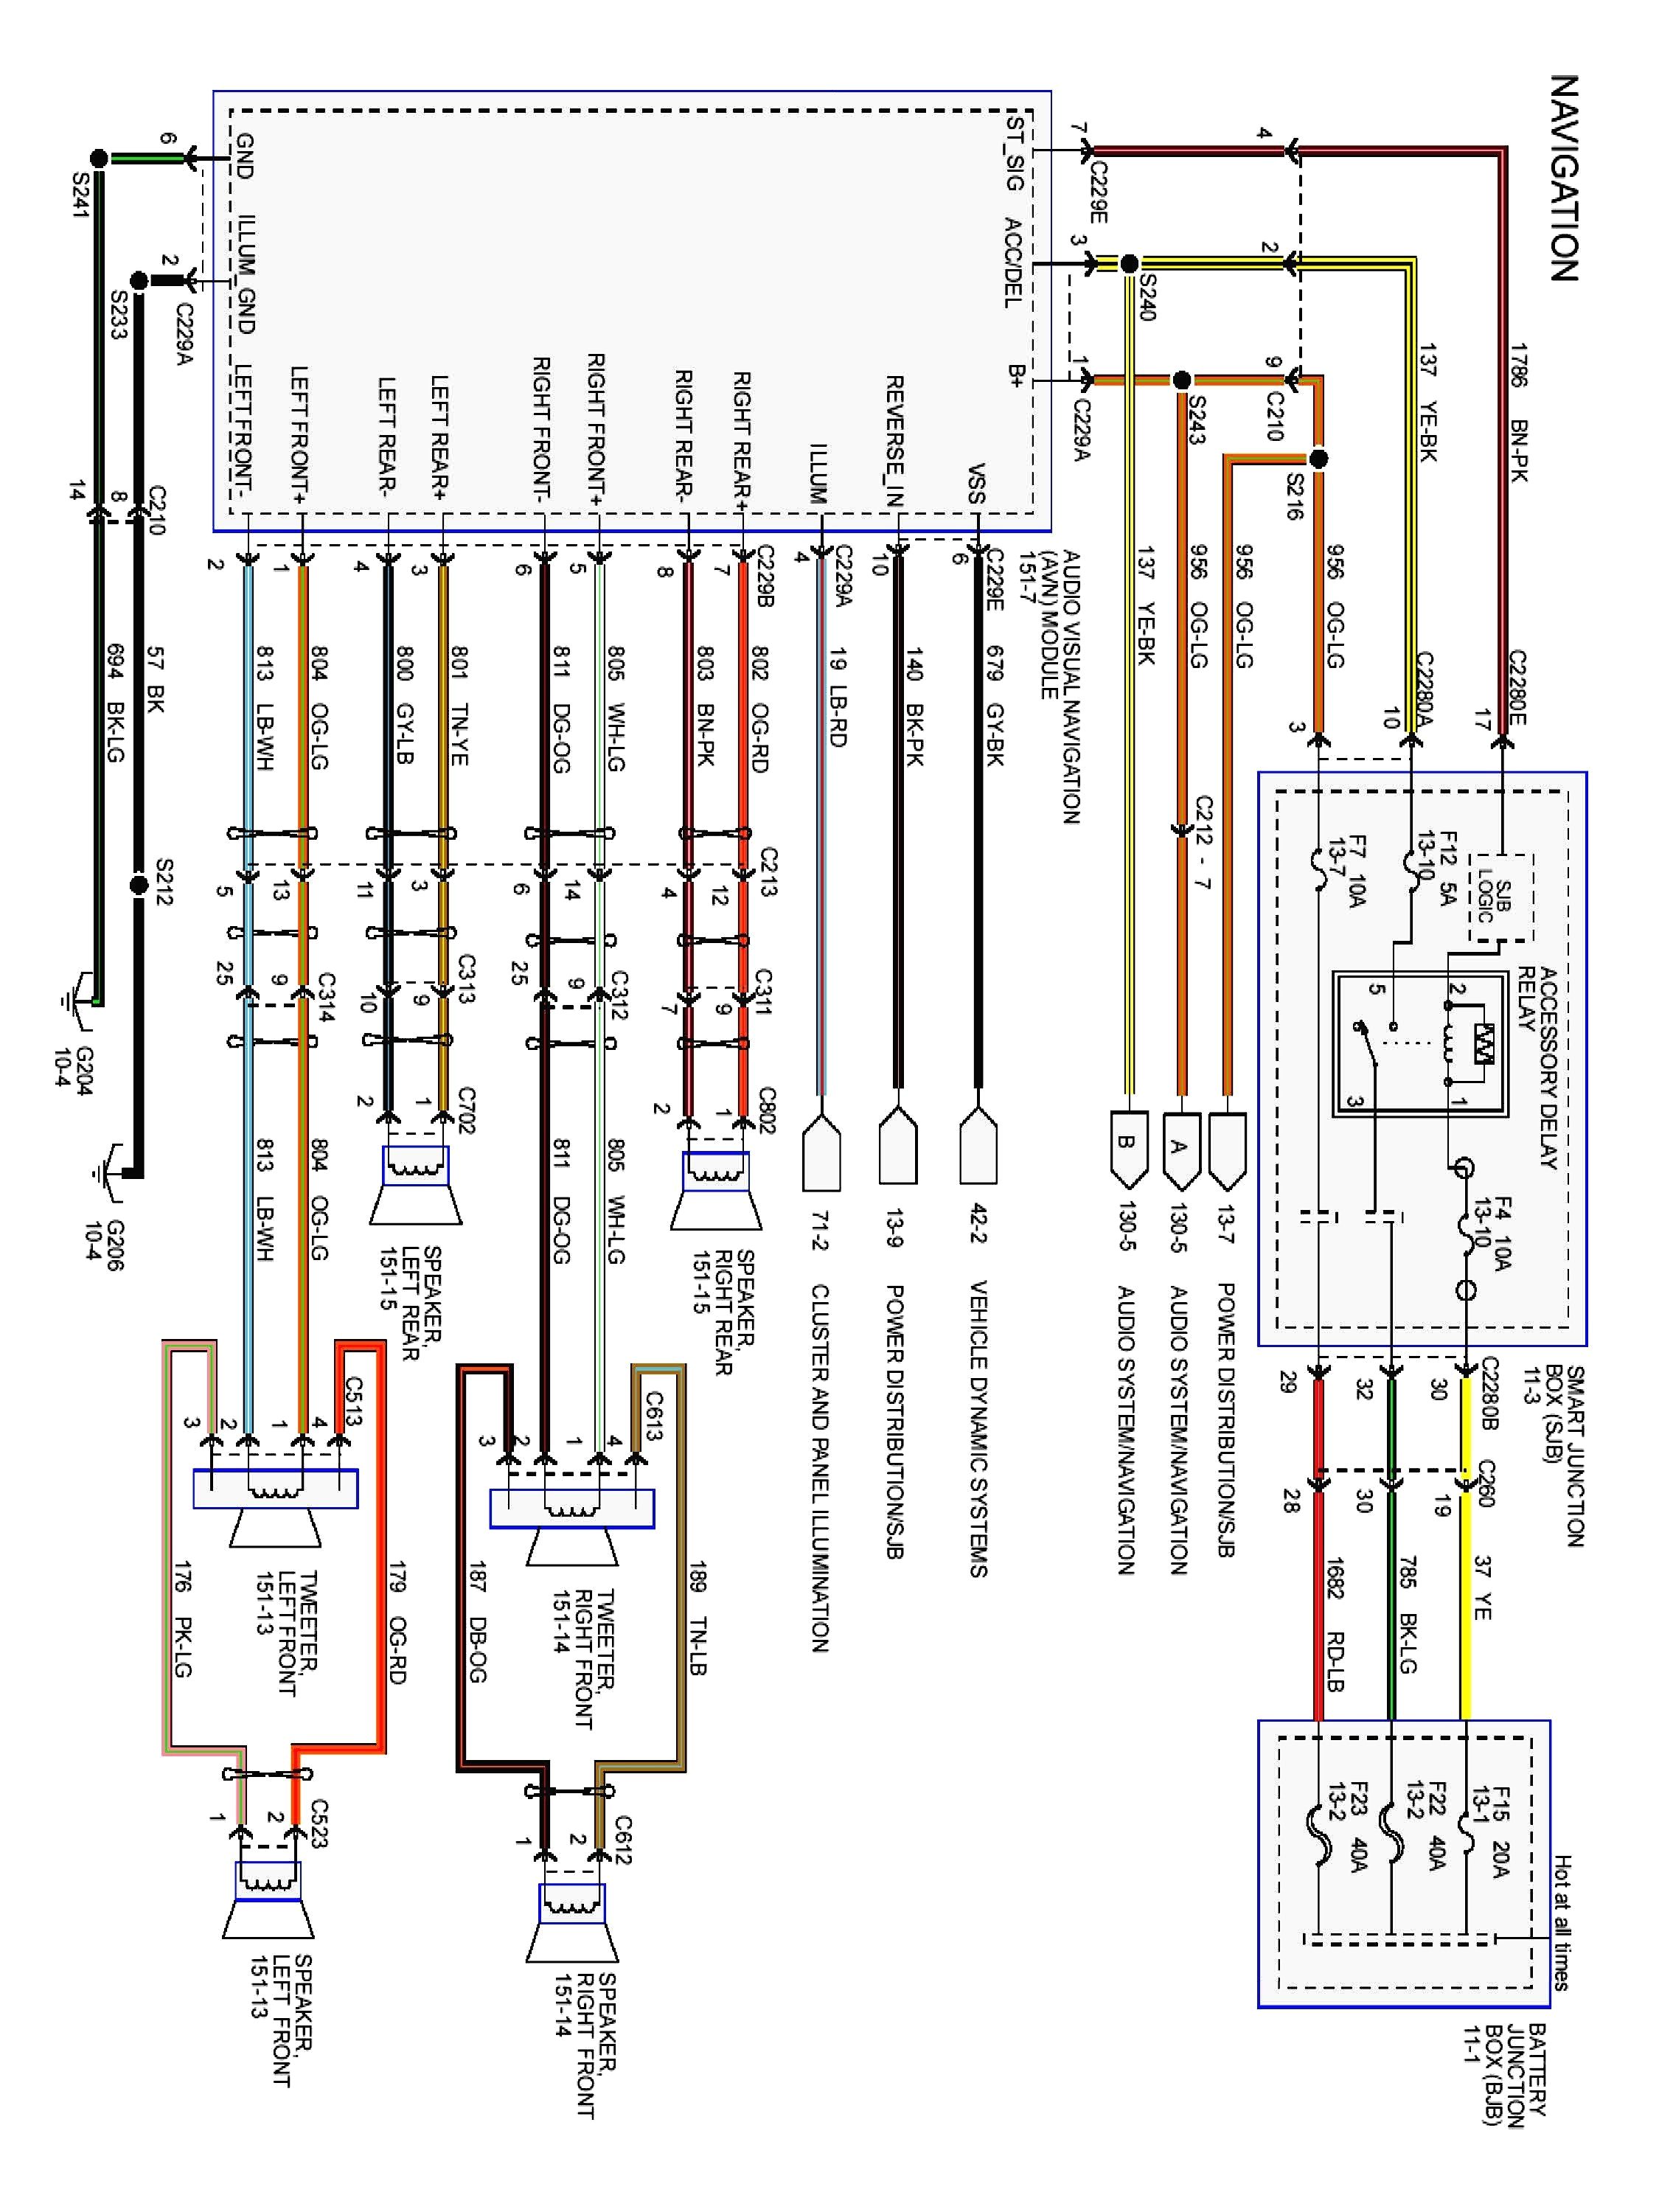 2008 Ford Econoline Van Radio Wiring Diagram from wholefoodsonabudget.com